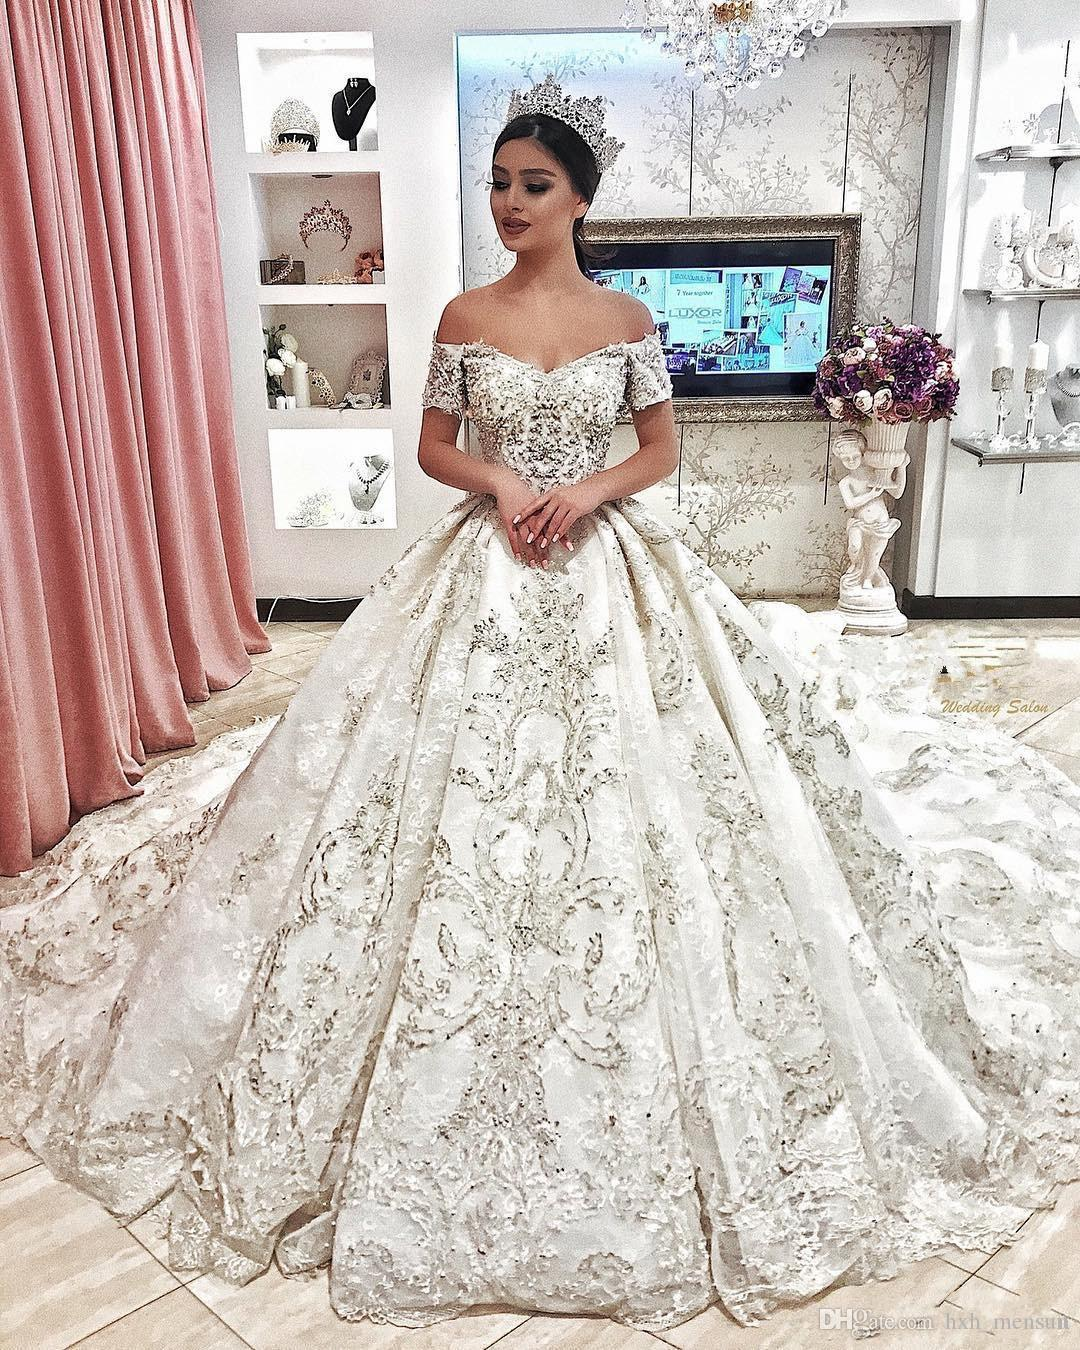 2019 New Dubai Arabic Luxury Sparkly Ivory Wedding Dresses Sexy Bling Beaded Lace Applique Illusion Long Sleeves A Line Chapel Bridal Gowns